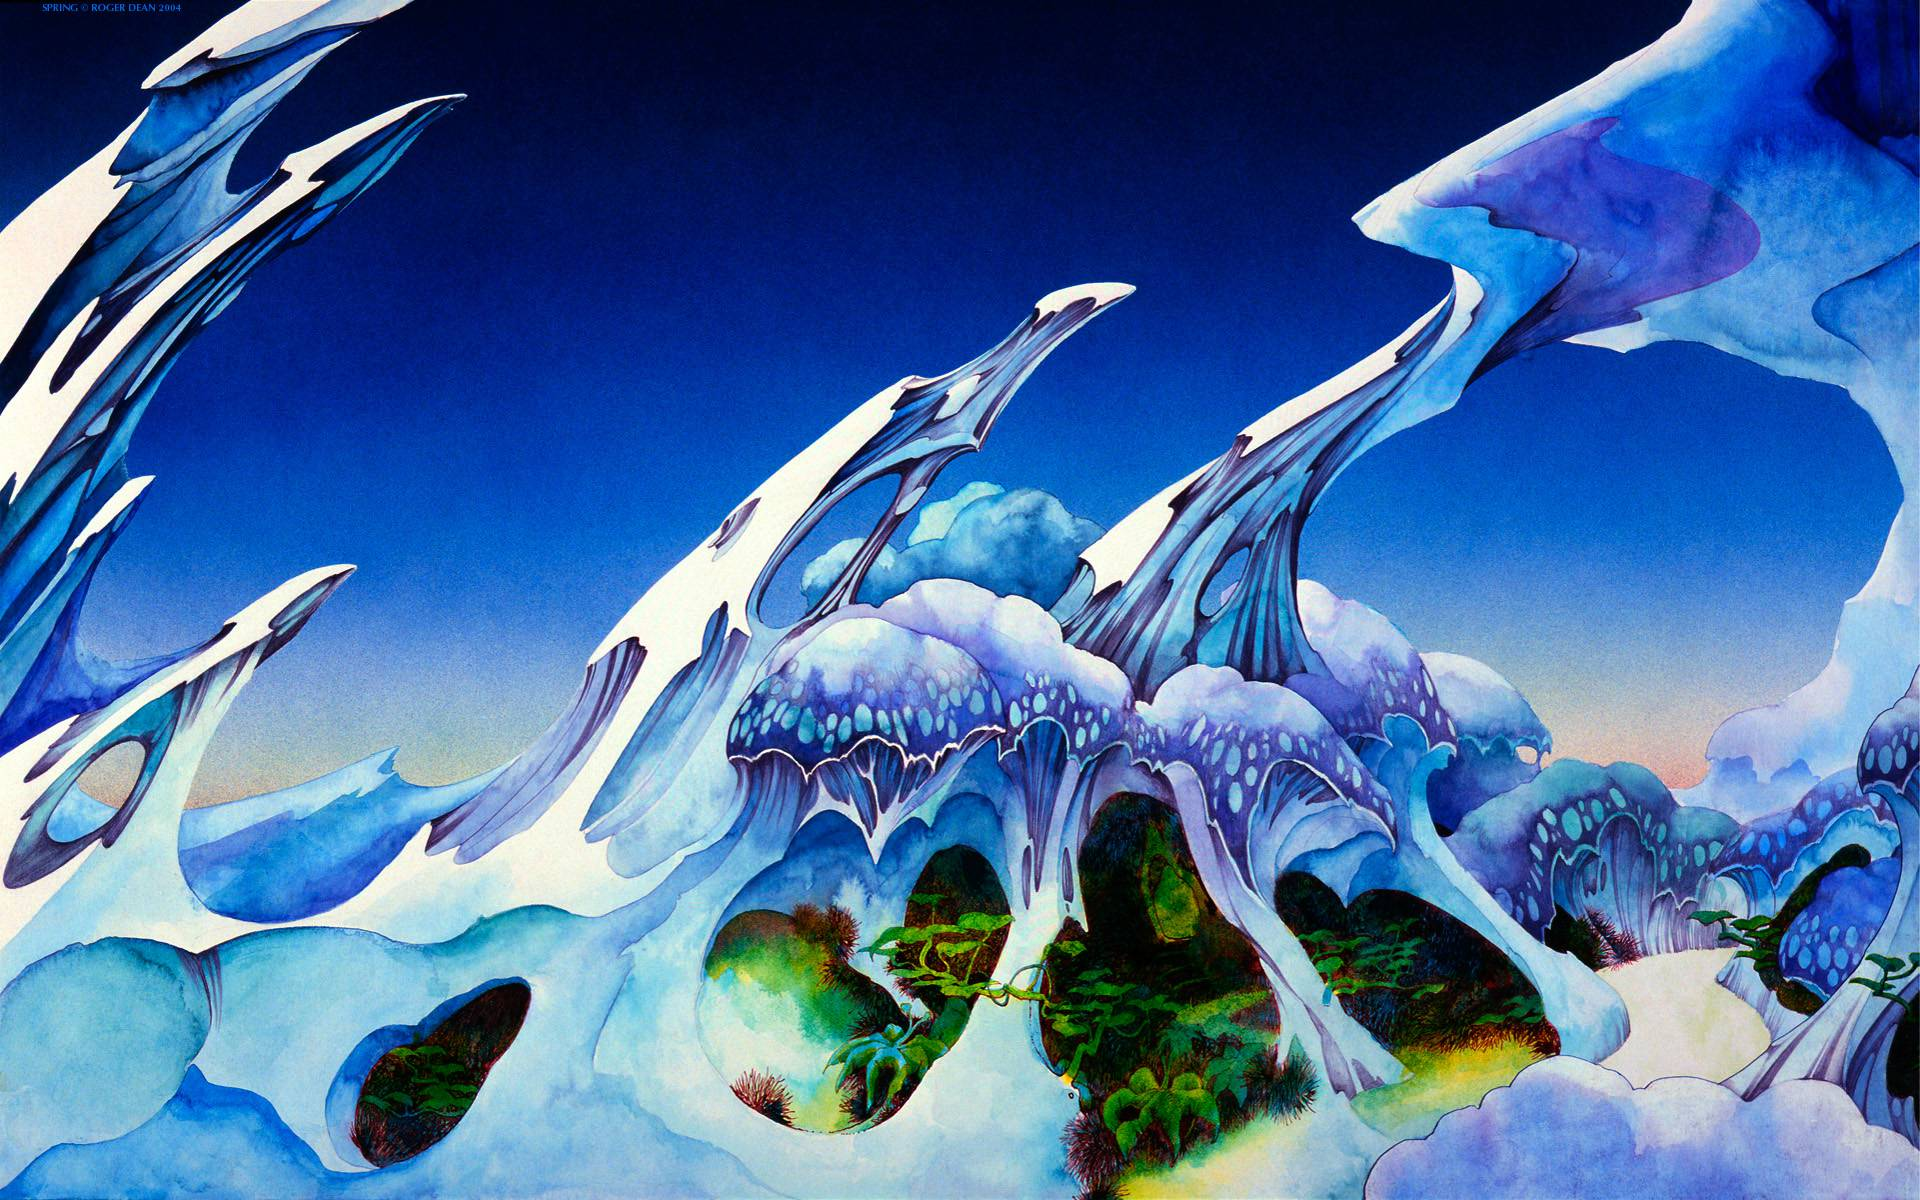 23 Wallpapers by Roger Dean  Wallpaper Abyss